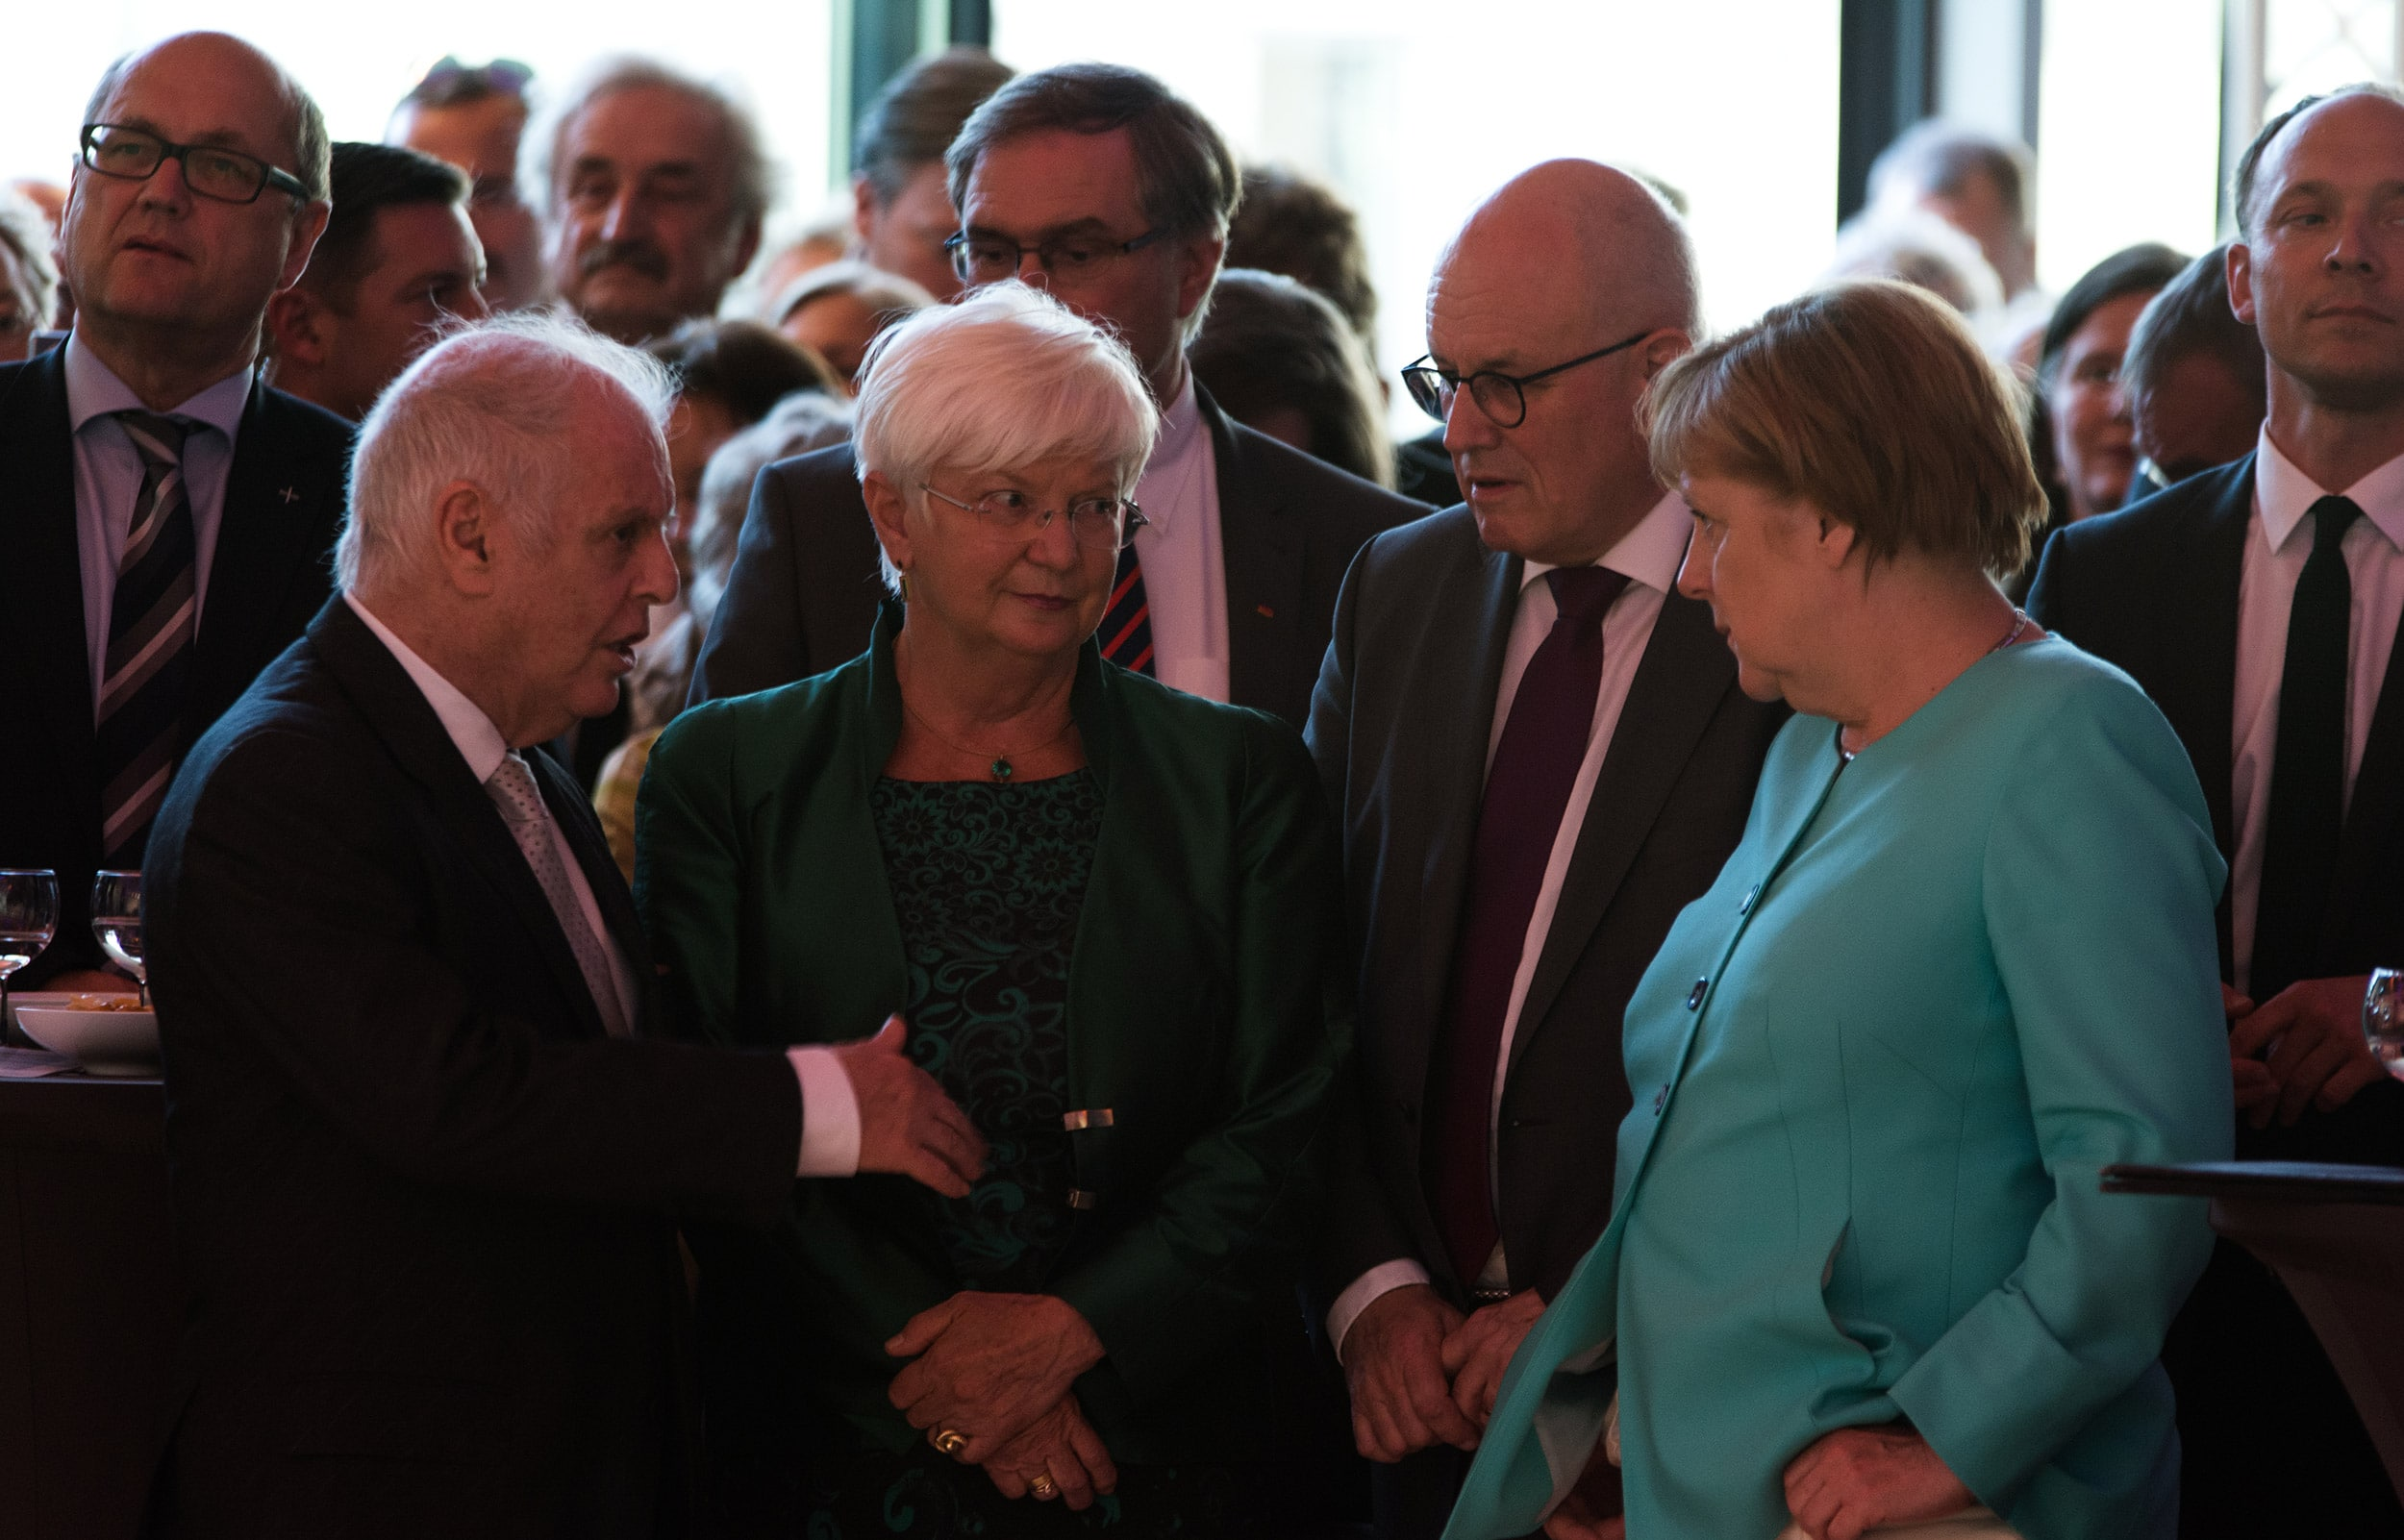 Angela Merkel: Germany can't do more for artists, or Italians will say we are rich